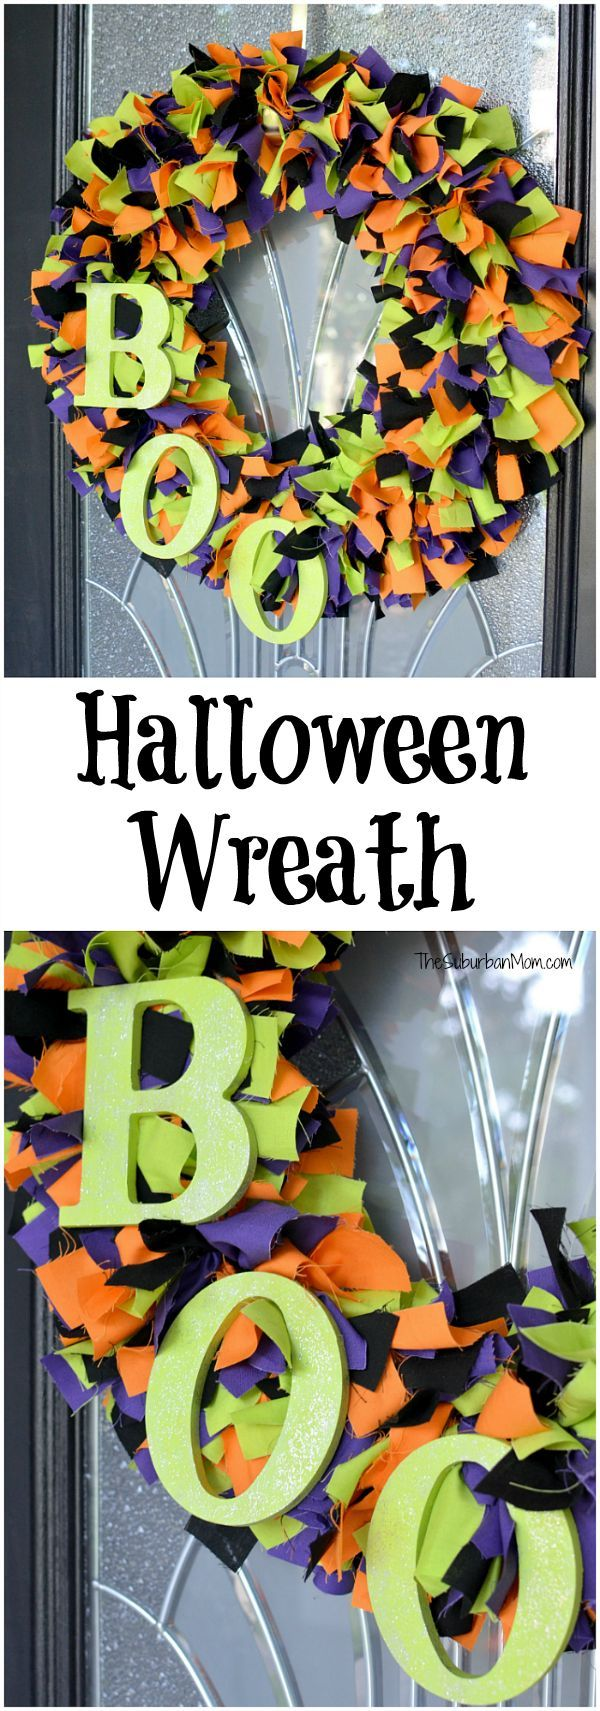 diy fabric halloween wreath tutorial - Halloween Projects Diy